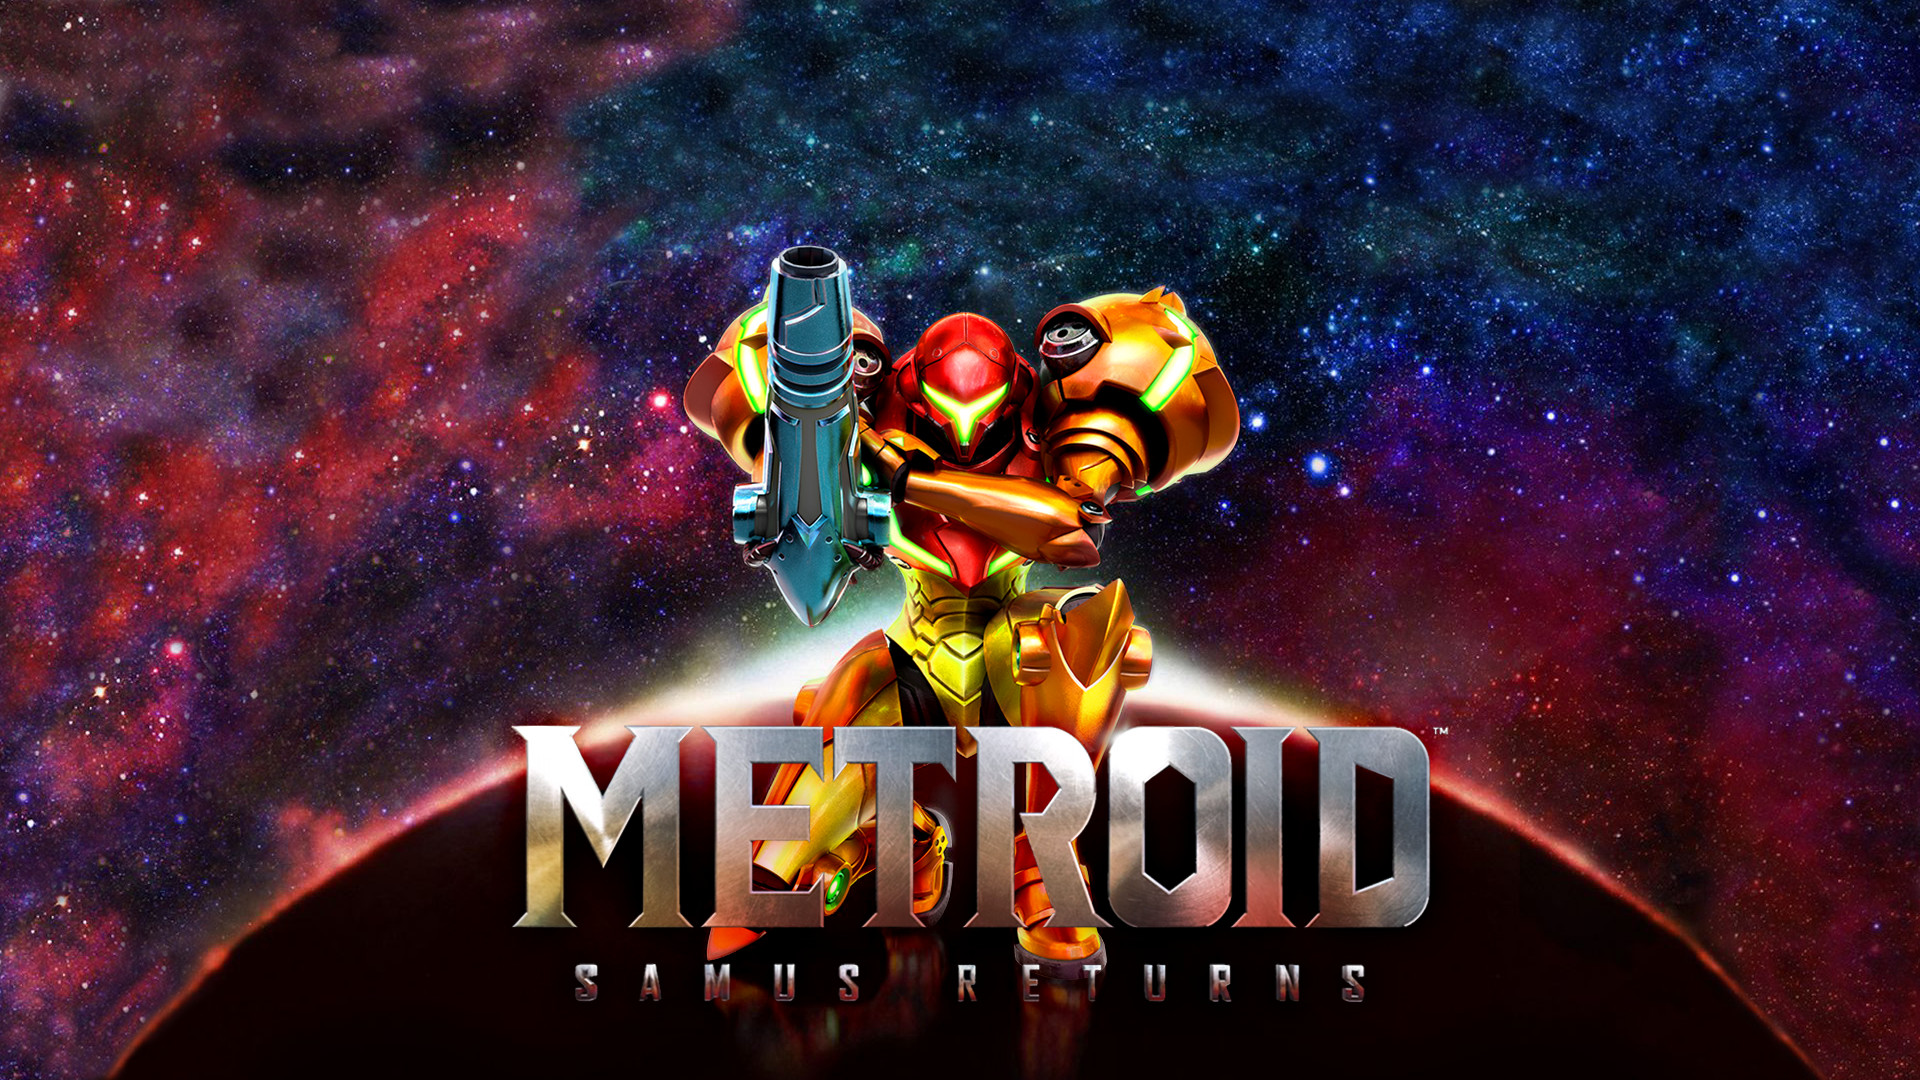 Did my best to expand the Samus Returns artwork into a 1080p wallpaper.  Enjoy!